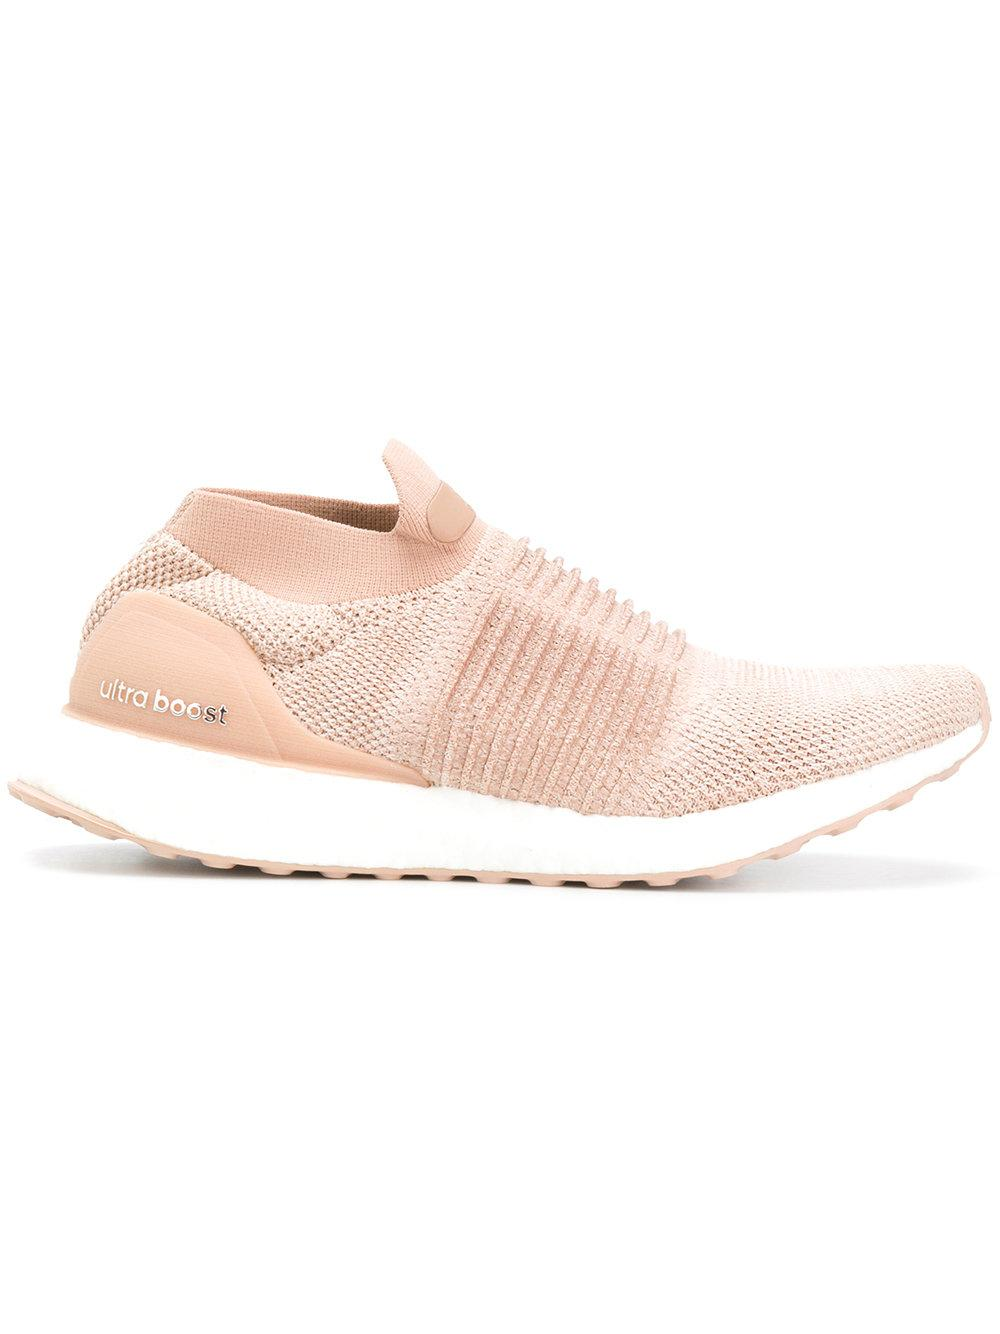 9386c8d9a13 Adidas Originals Adidas Ultraboost Laceless Sneakers - Pink